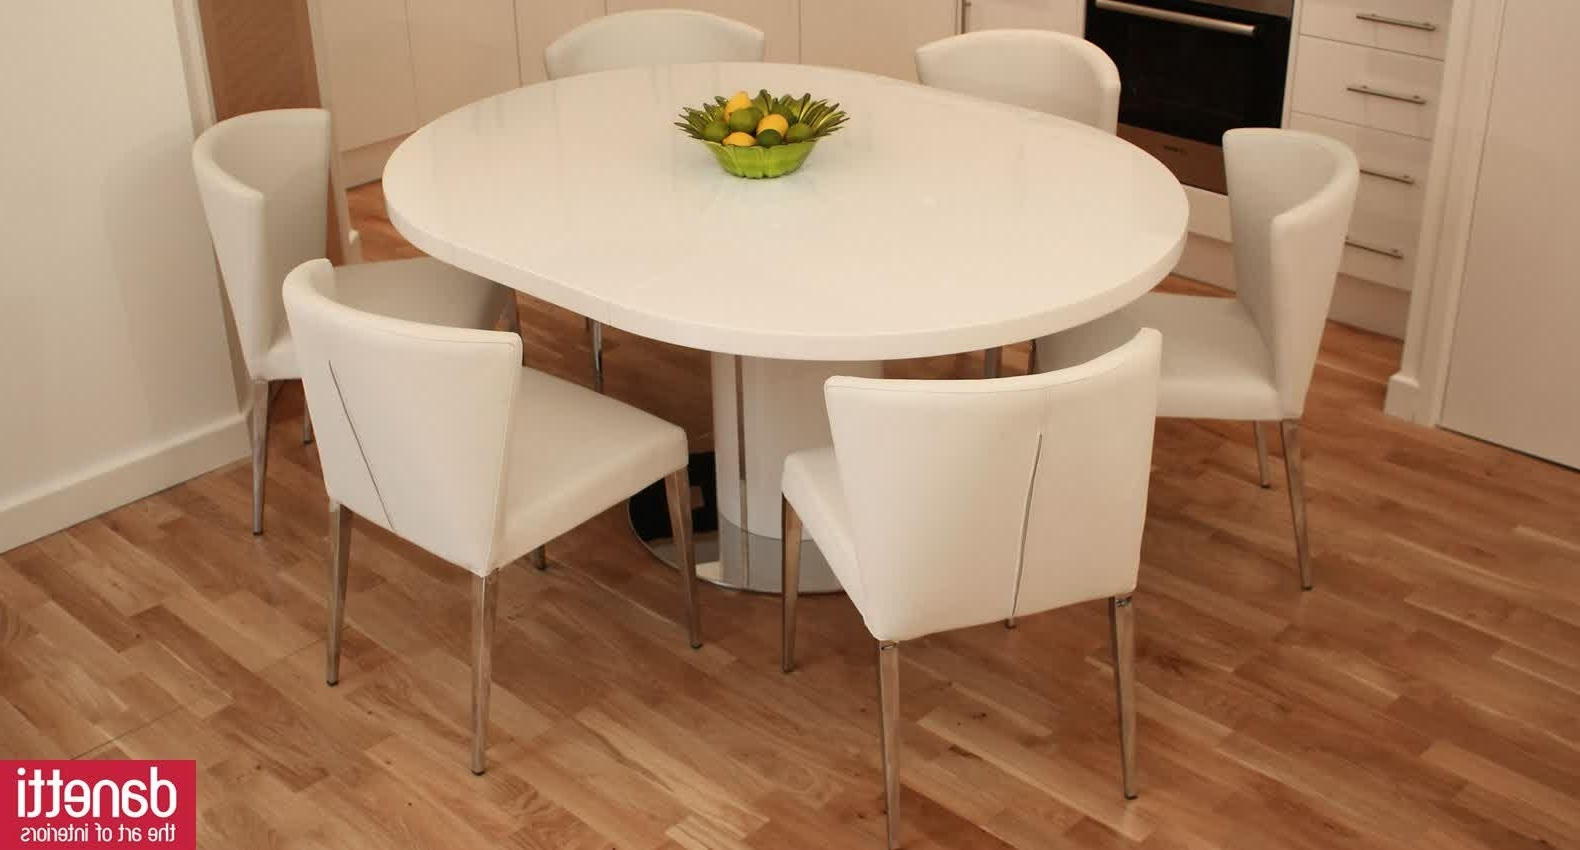 Small Sets For Set Plaster Silhouette Base Room Pedestal Extendable Inside Current Small Round Extending Dining Tables (View 24 of 25)